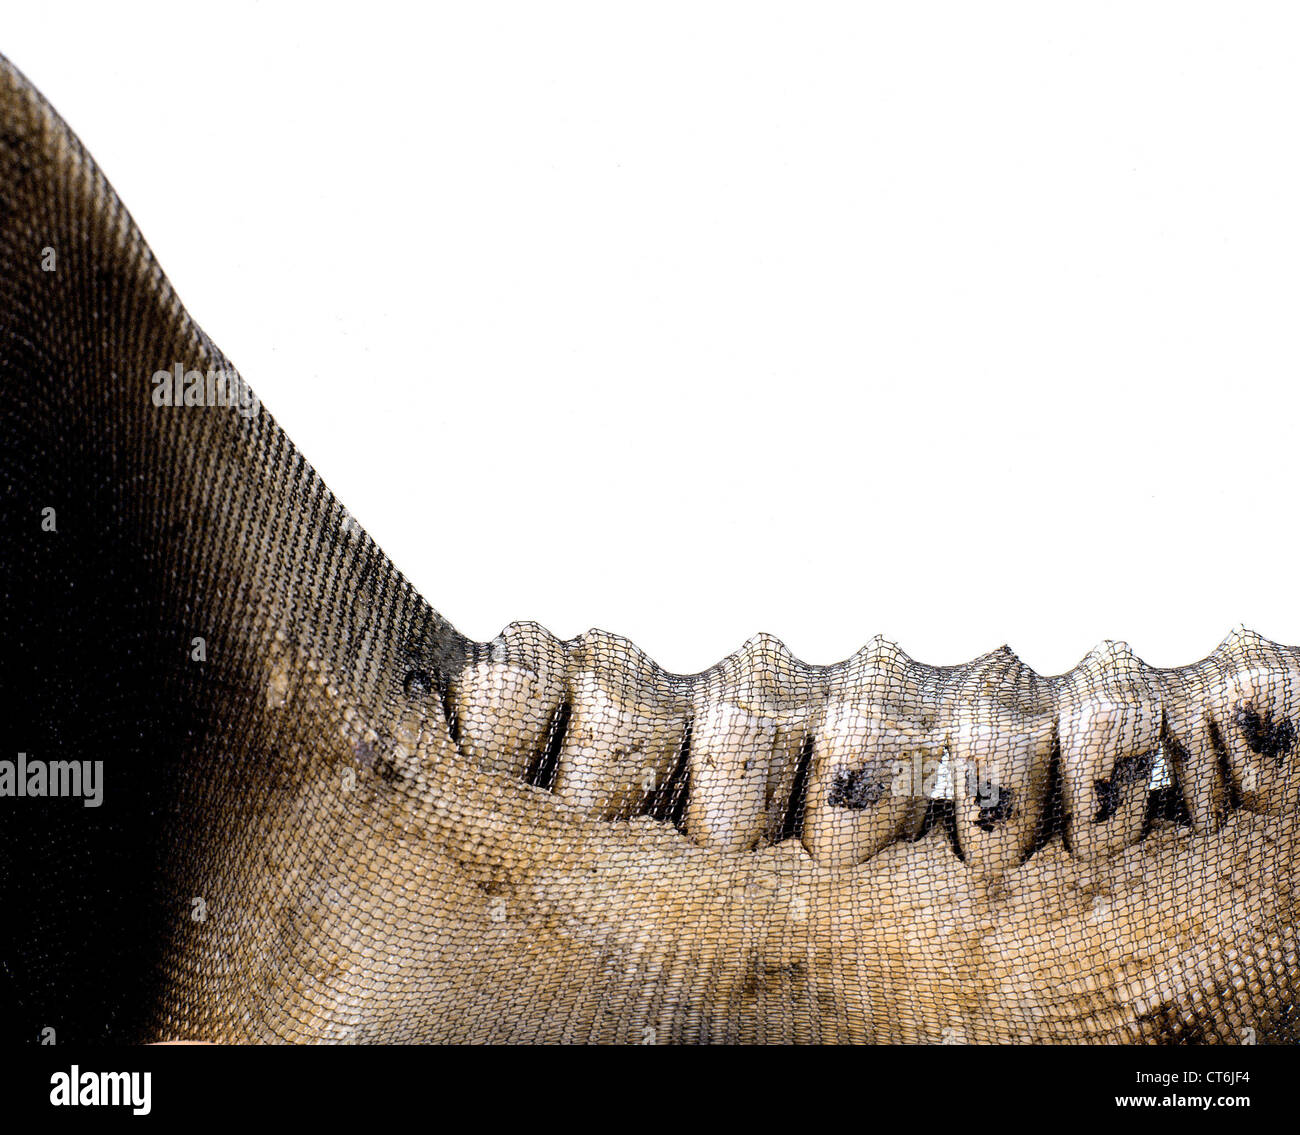 Jawbone with network stock photo 49318728 alamy jawbone with network biocorpaavc Image collections